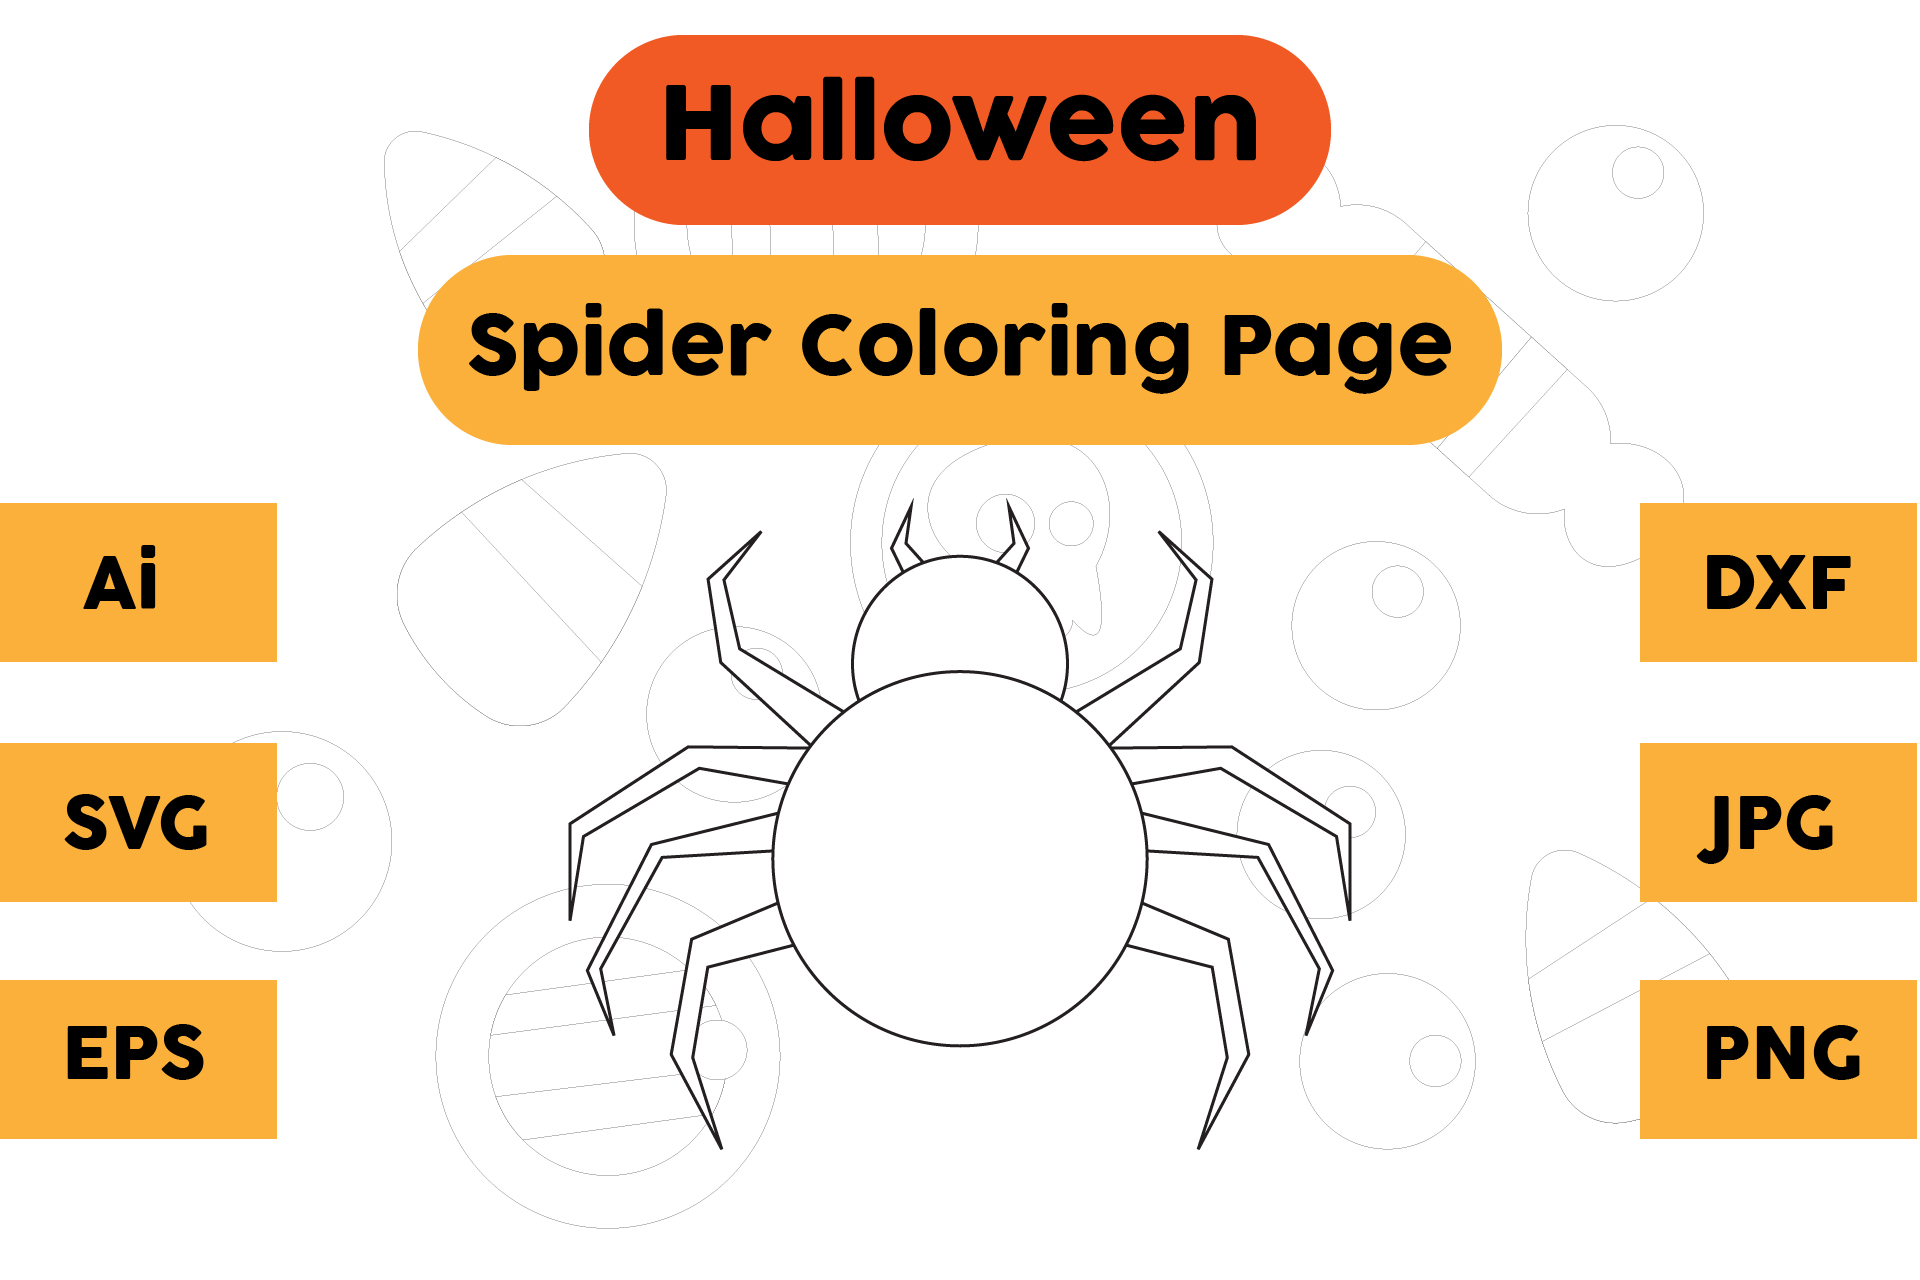 Halloween Coloring Page Spider 02 Graphic By Isalsemarang Creative Fabrica